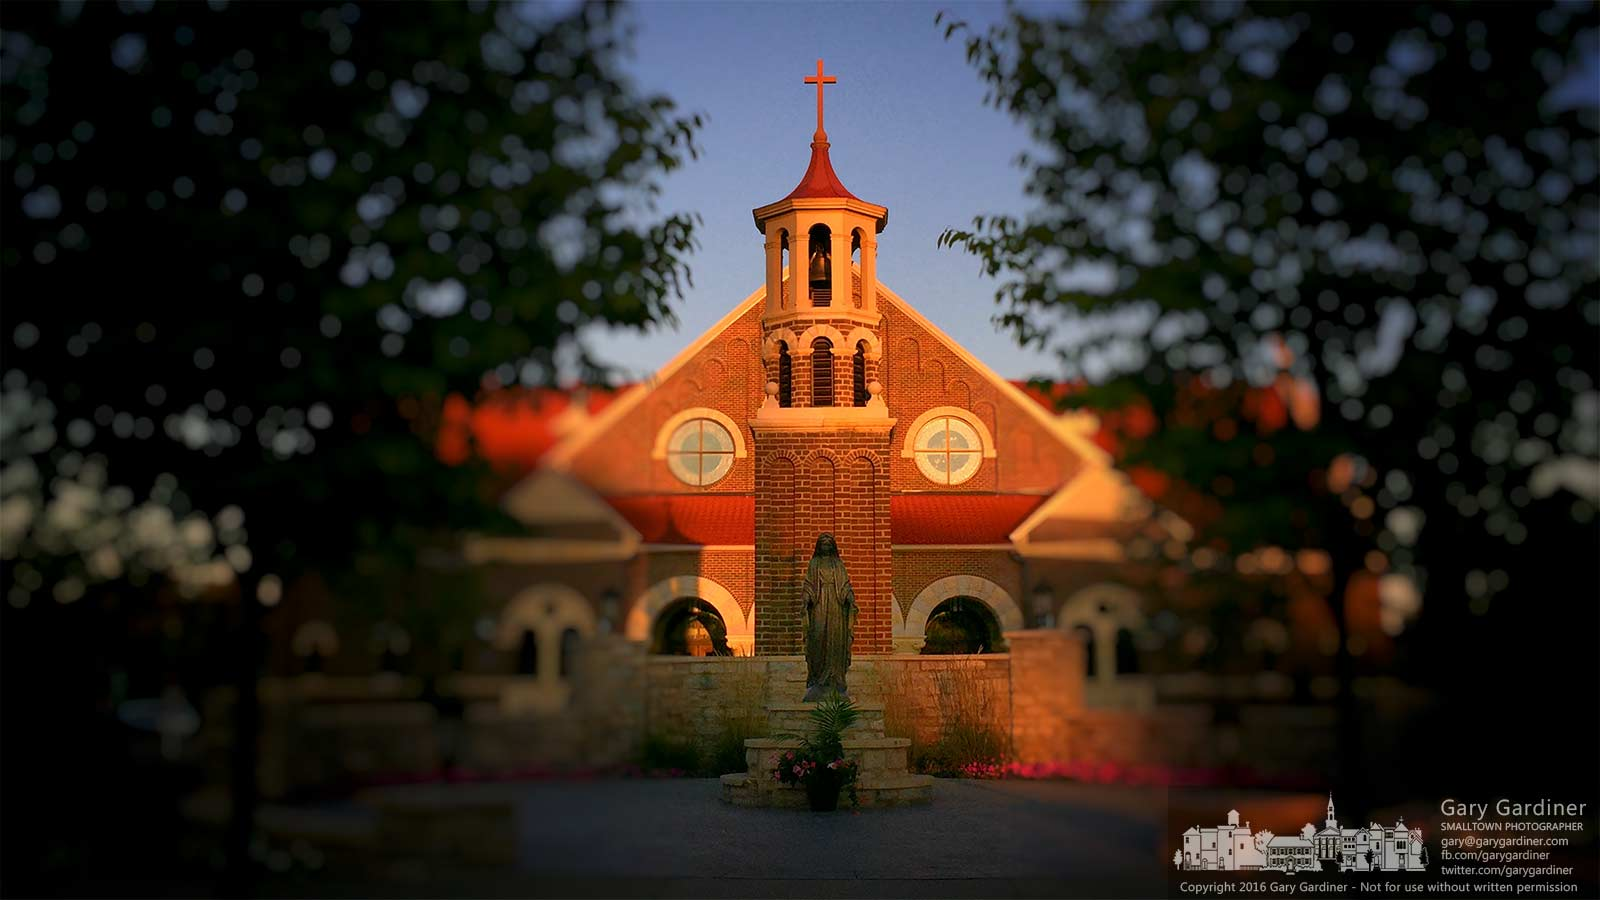 The light of dawn brightens St. Paul the Apostle Catholic Church in Westerville, Ohio, on a Sunday morning. My Final Photo for September 4, 2016.